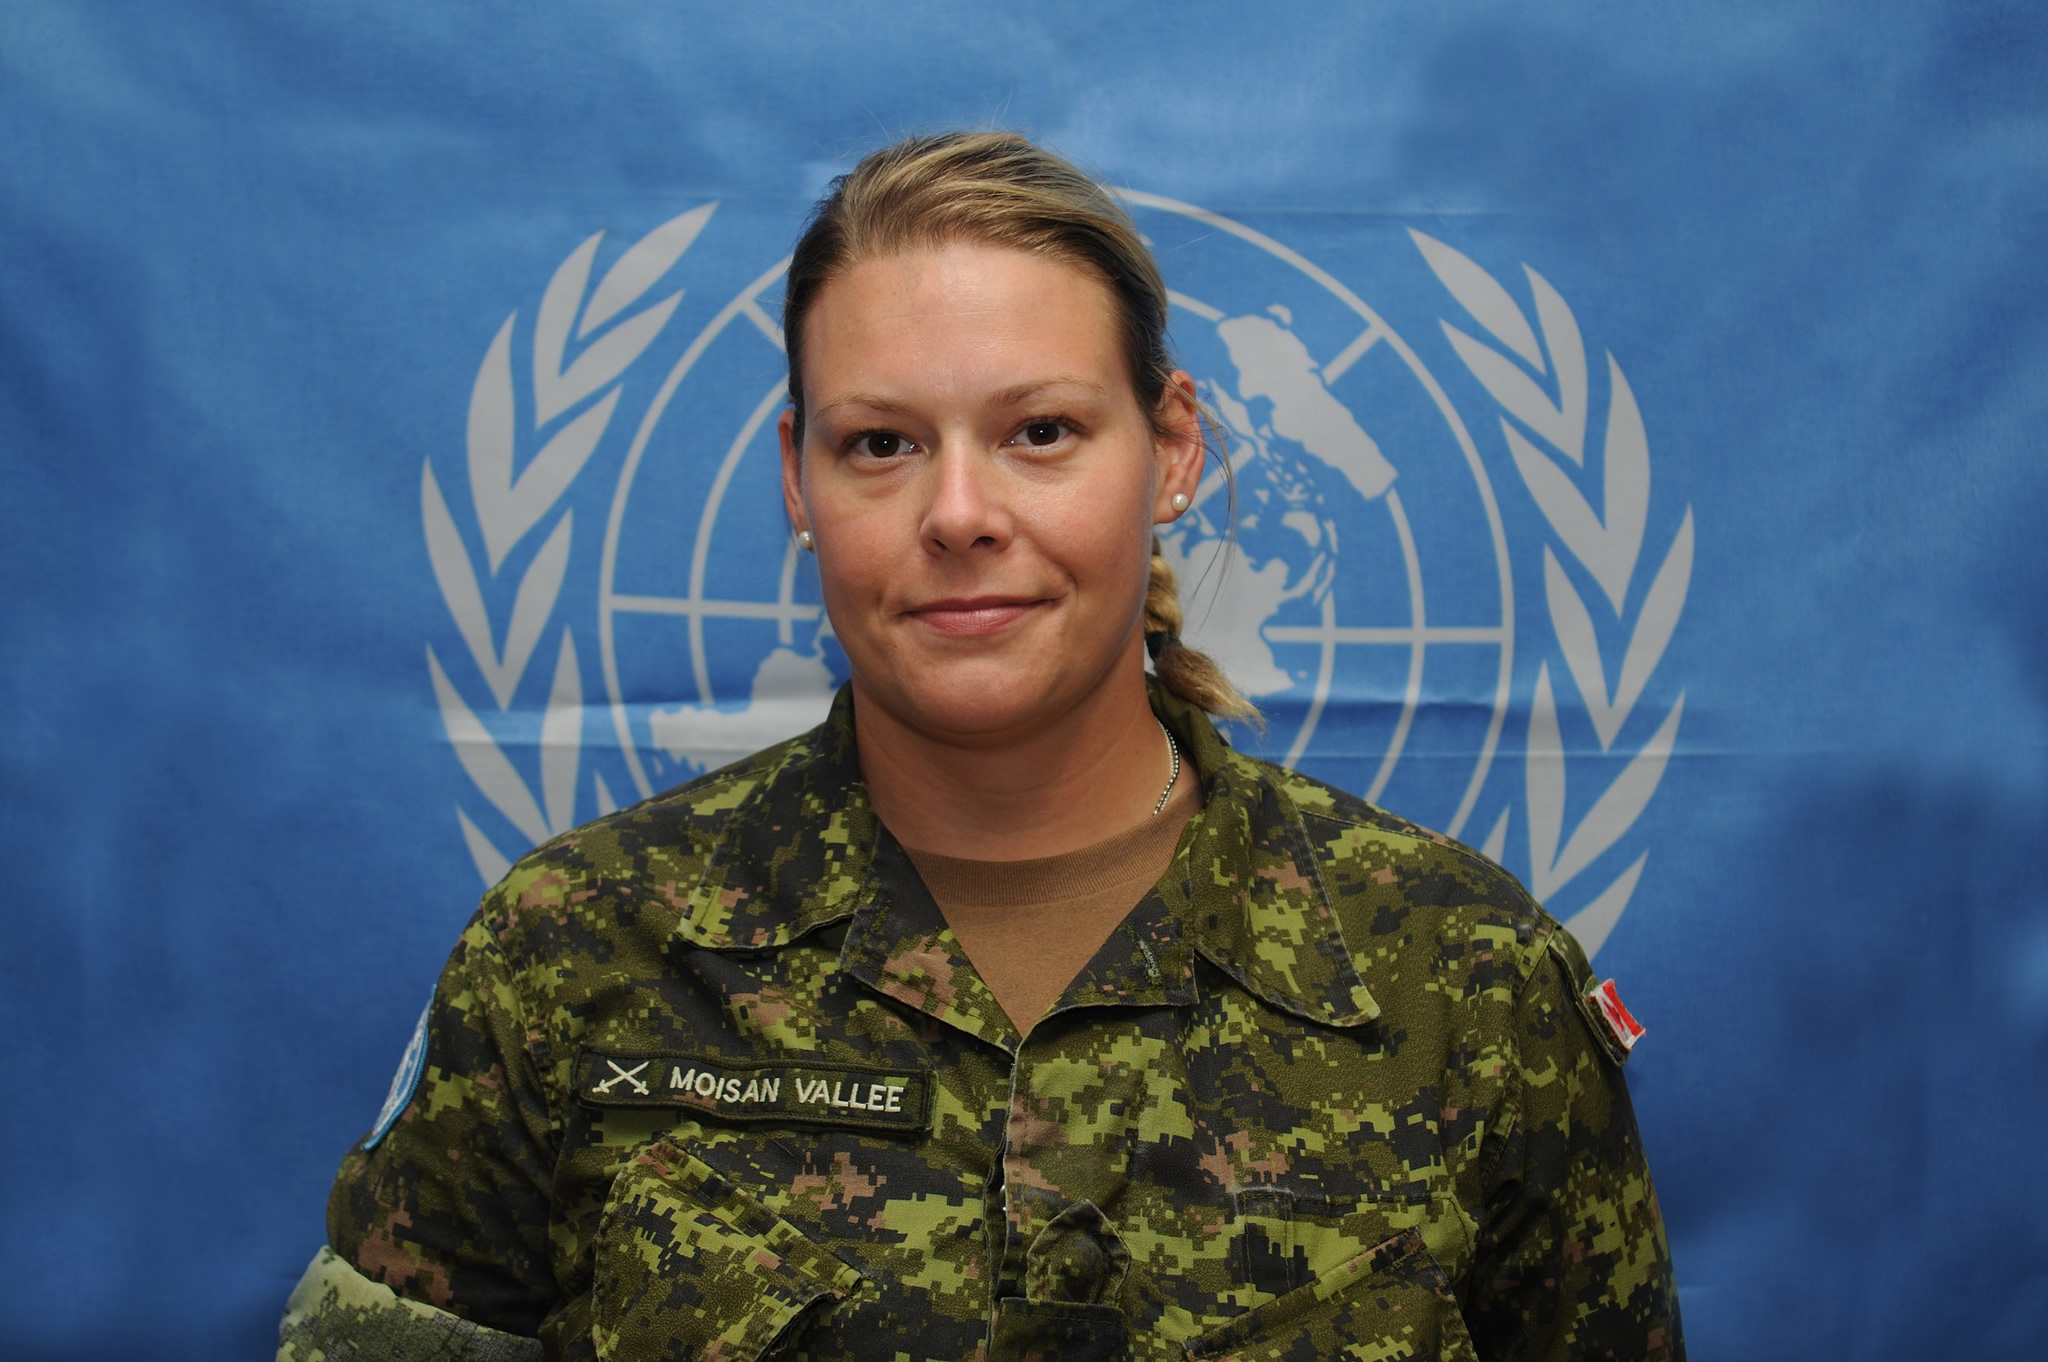 A female soldier stands in front of a blue background